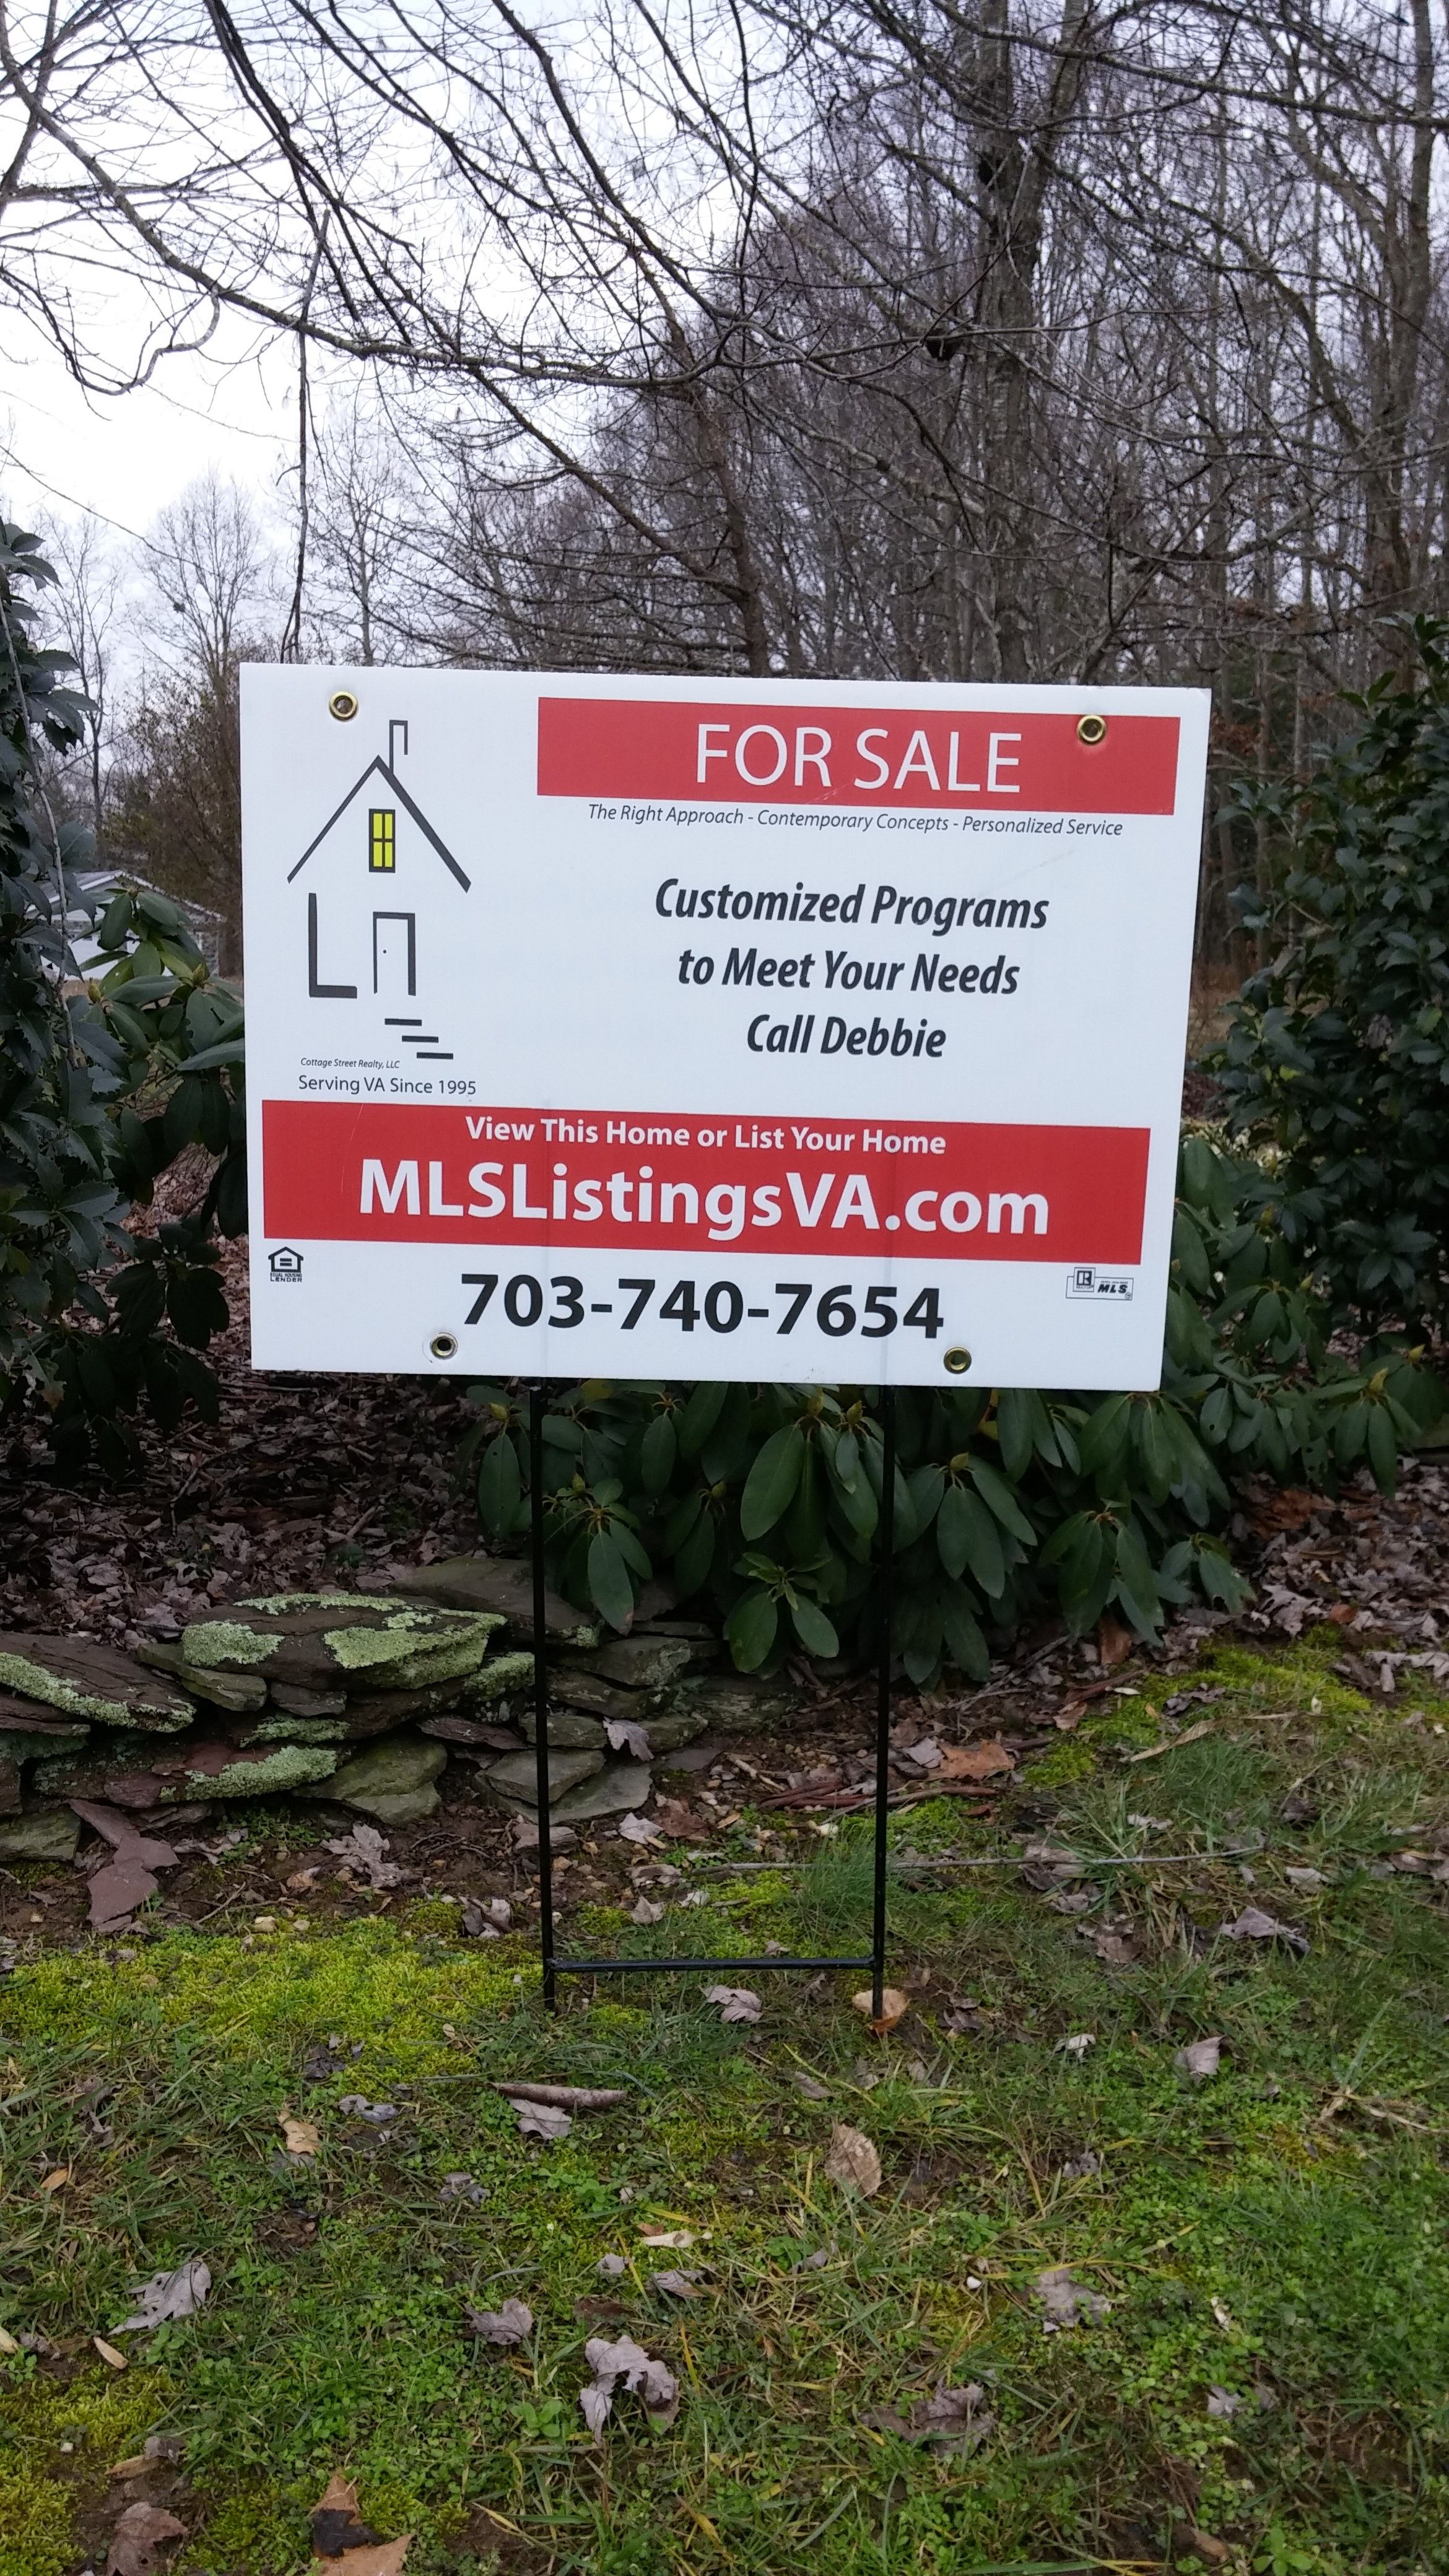 Real estate for sale by owner - Yard Sign Rental Homes For Sale By Owner Fsbo Virginia Flat Fee Mls Listings